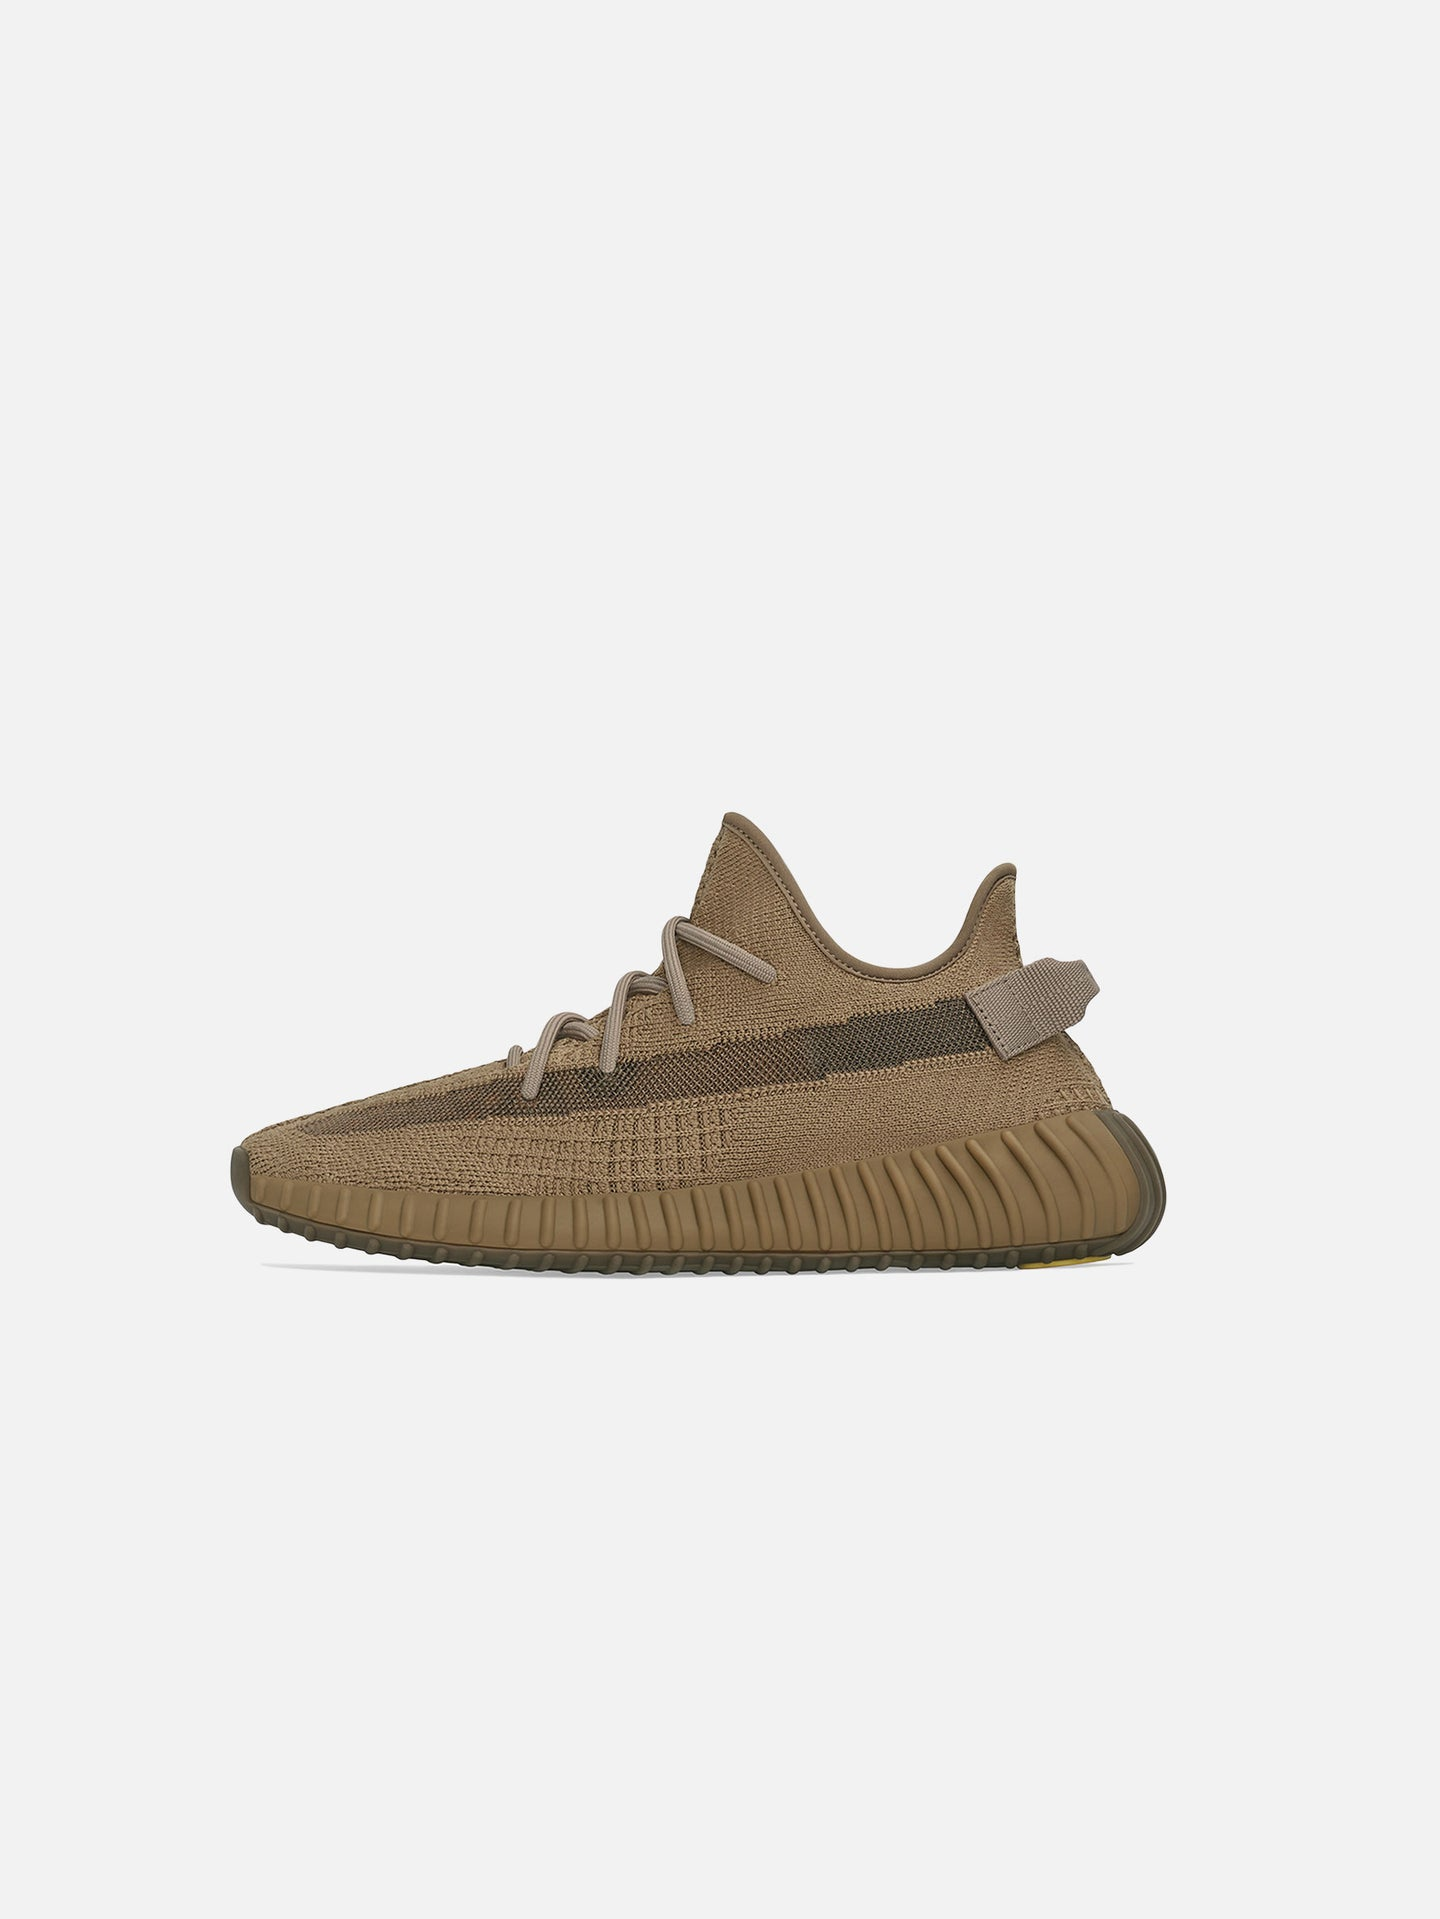 YEEZY BOOST 350 V2: EARTH